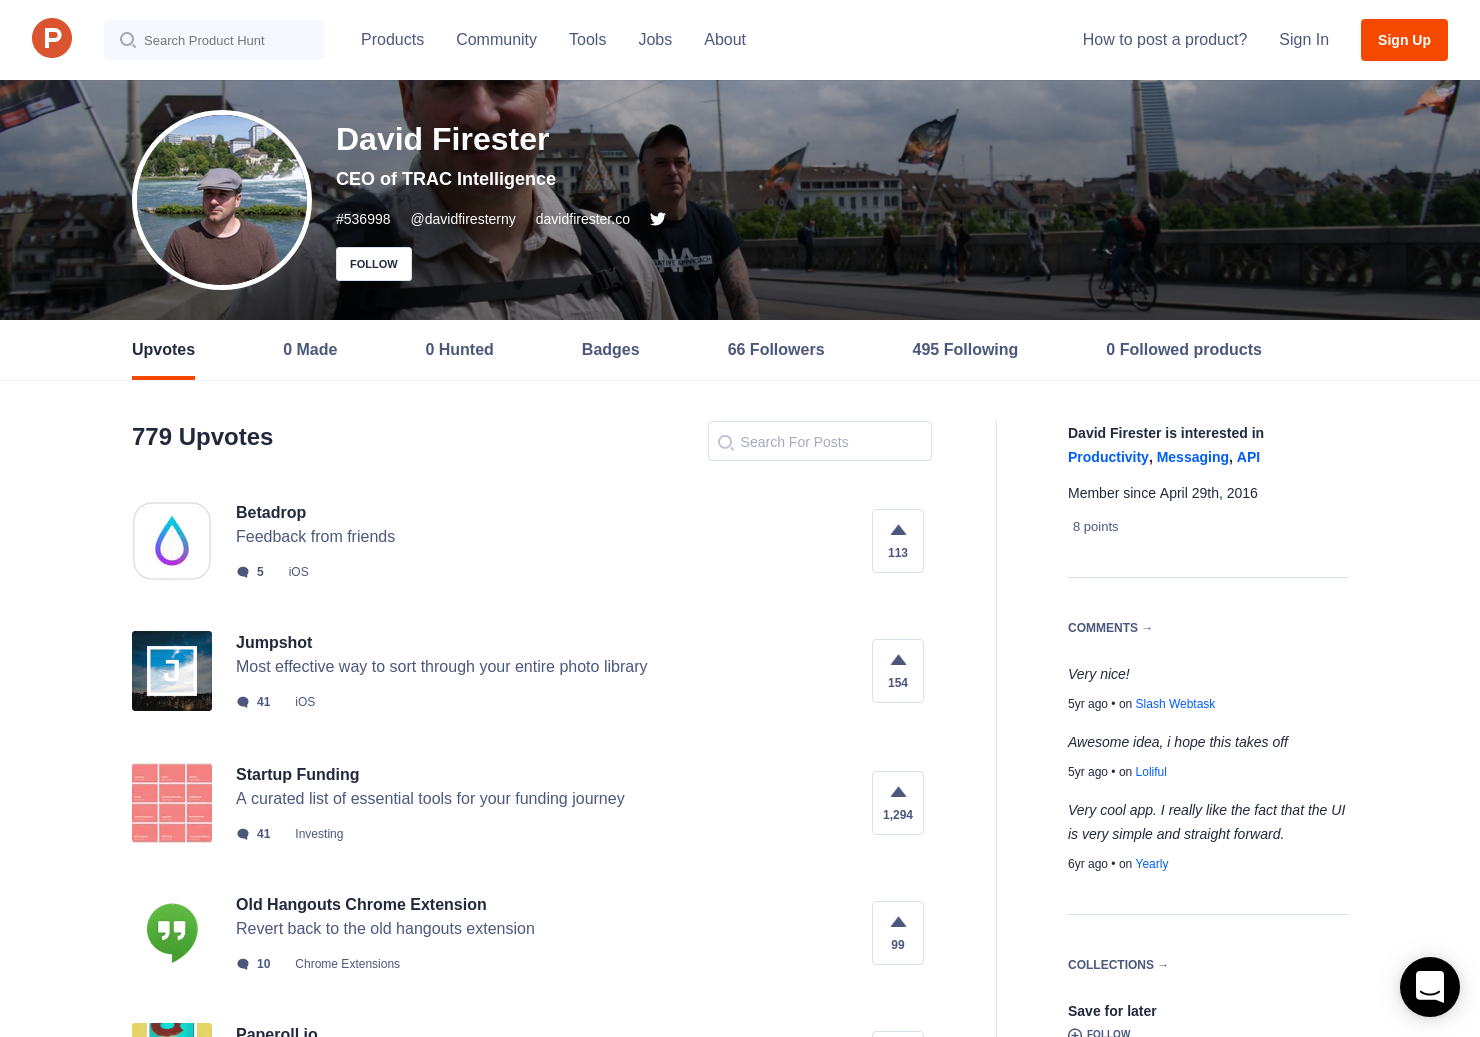 david firester s profile on product hunt